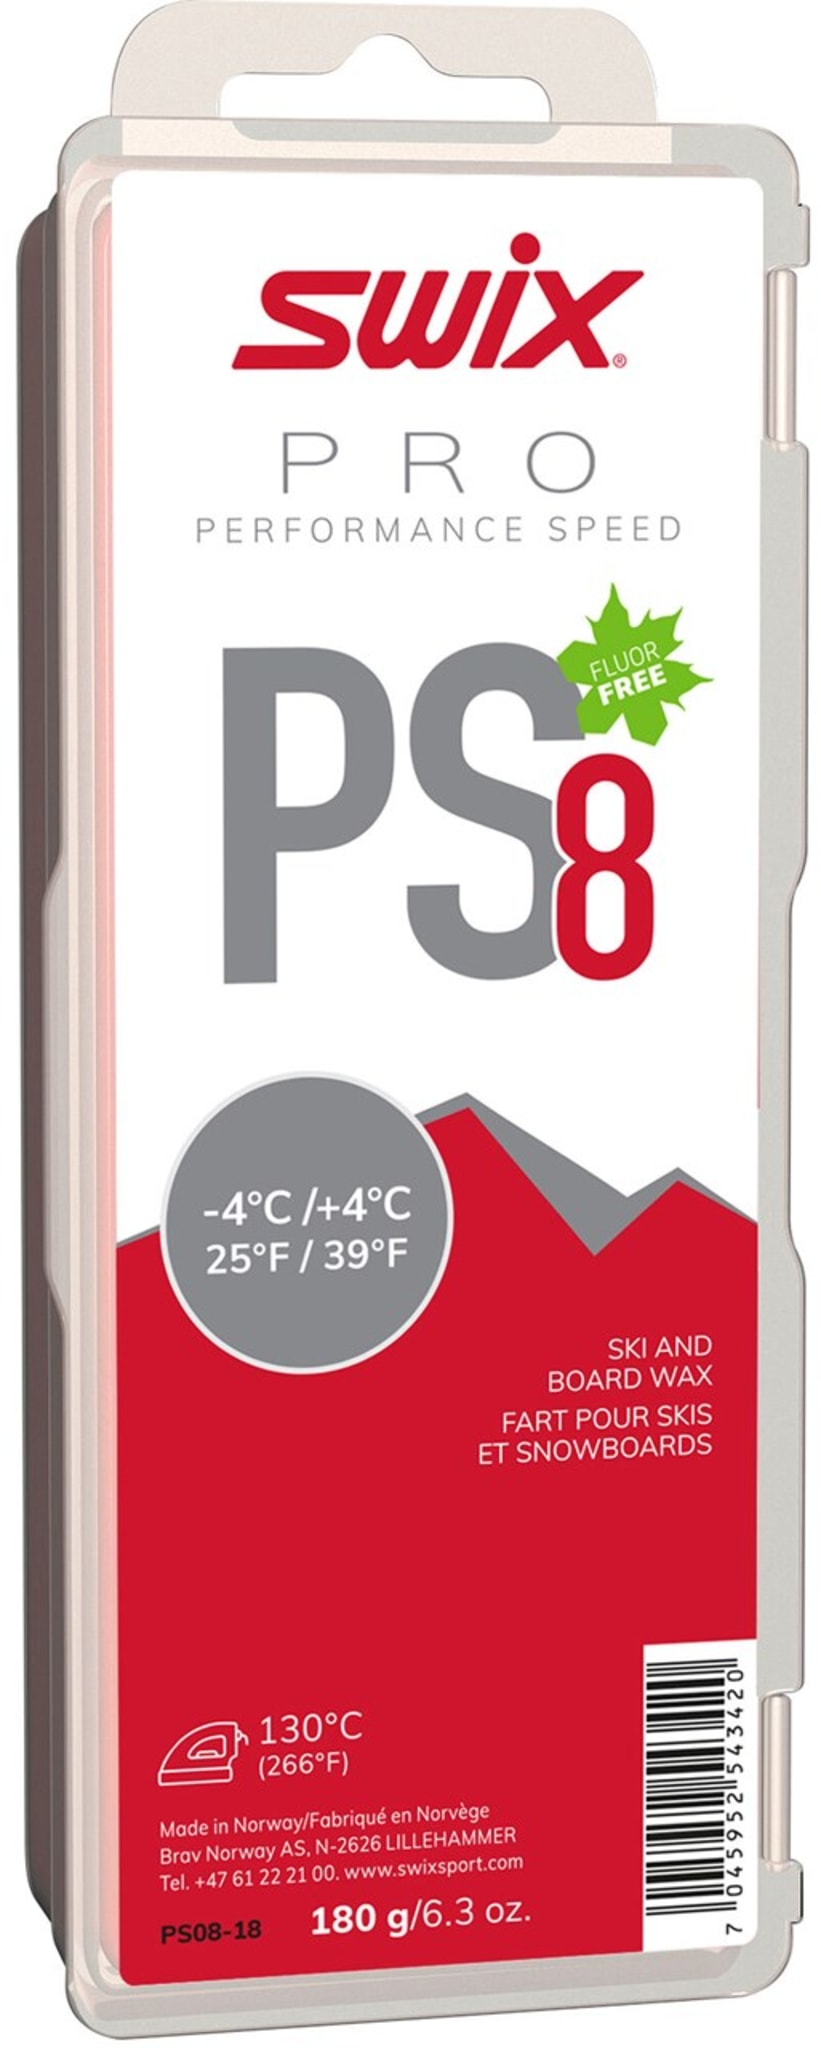 PS8 Red -4°C/+4°C 180g